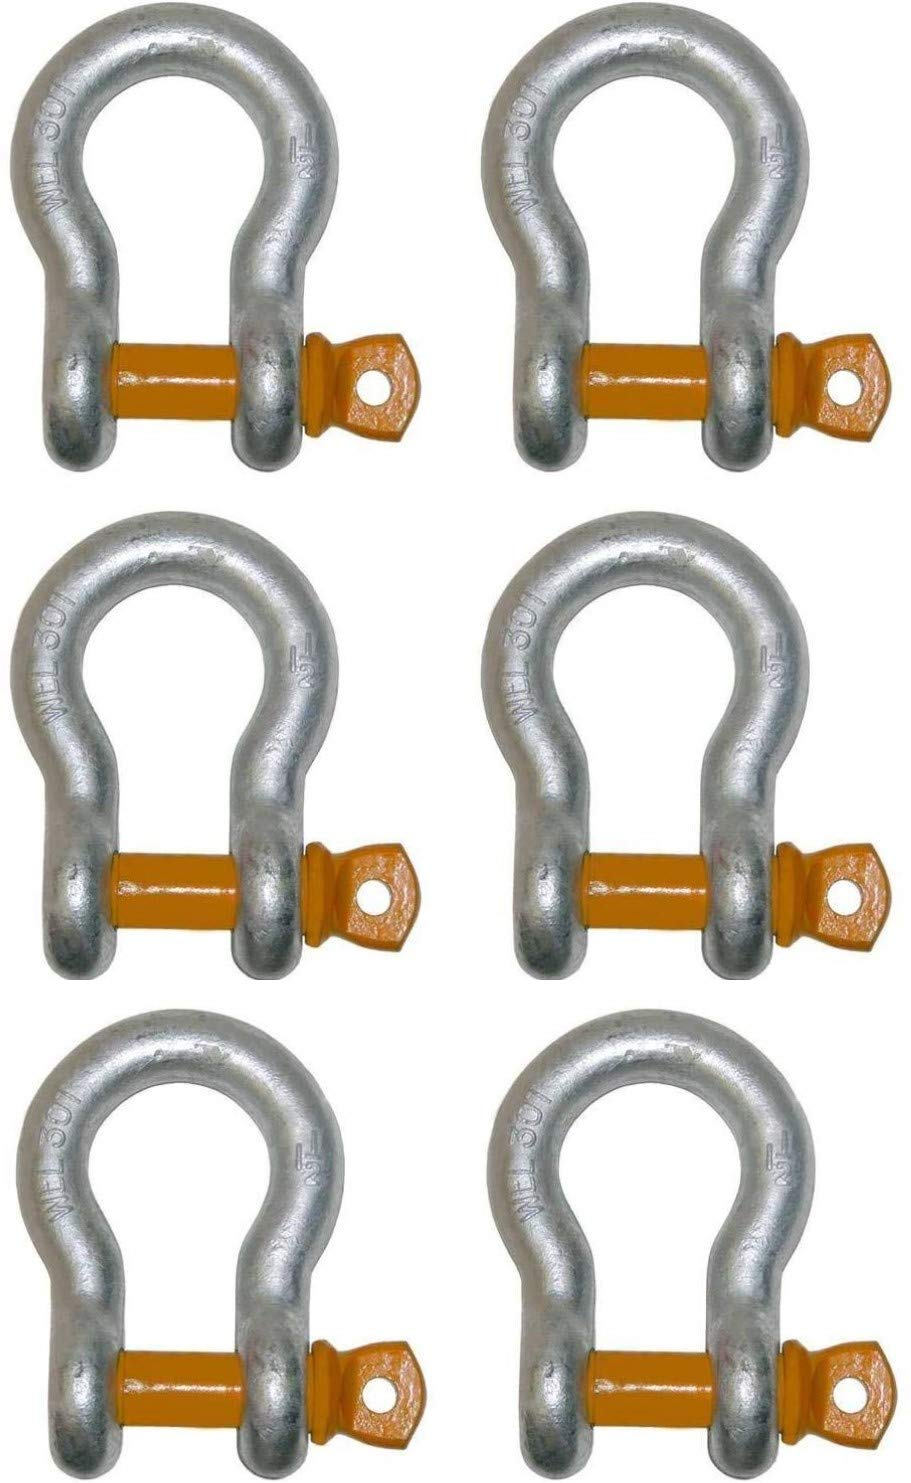 Set of 6, Products 11-AS12-x6, Strong! 1/2'' 3.3 Ton WLL Alloy Screw Pin Anchor Shackle, High Capacity for Lifting, Rigging, Chains, Straps by BA Products